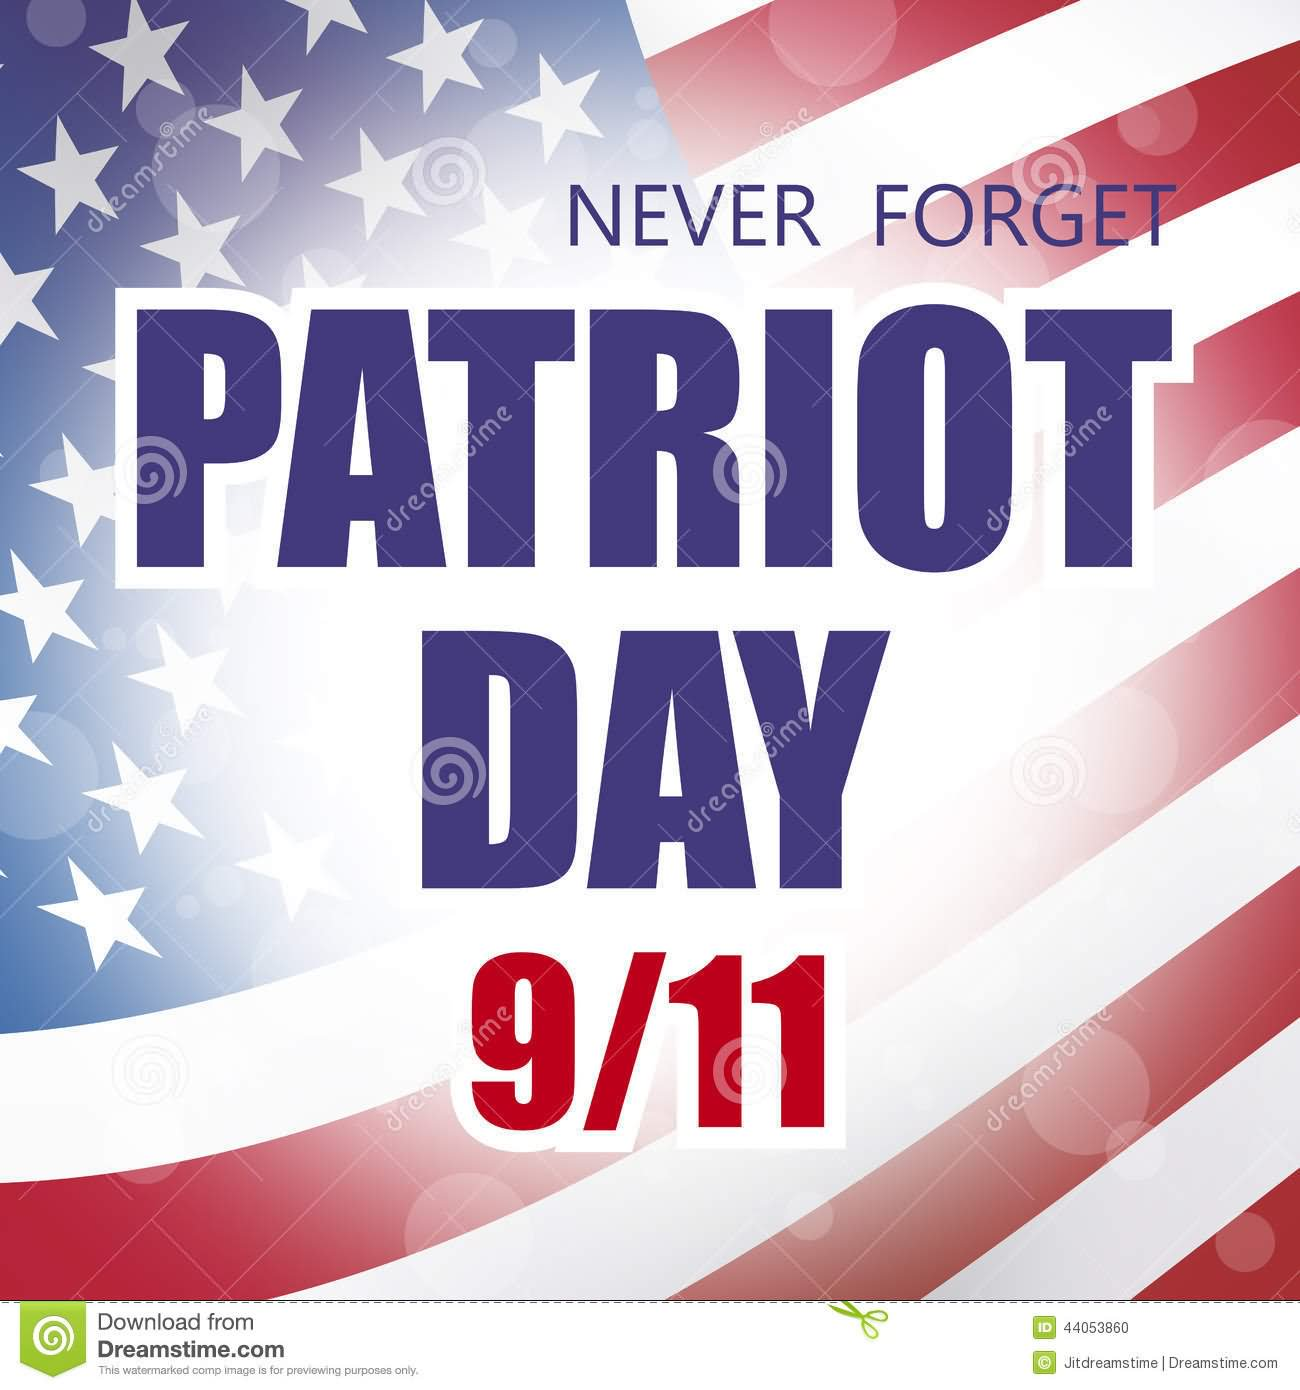 Never Forget Patriot Day 9-11